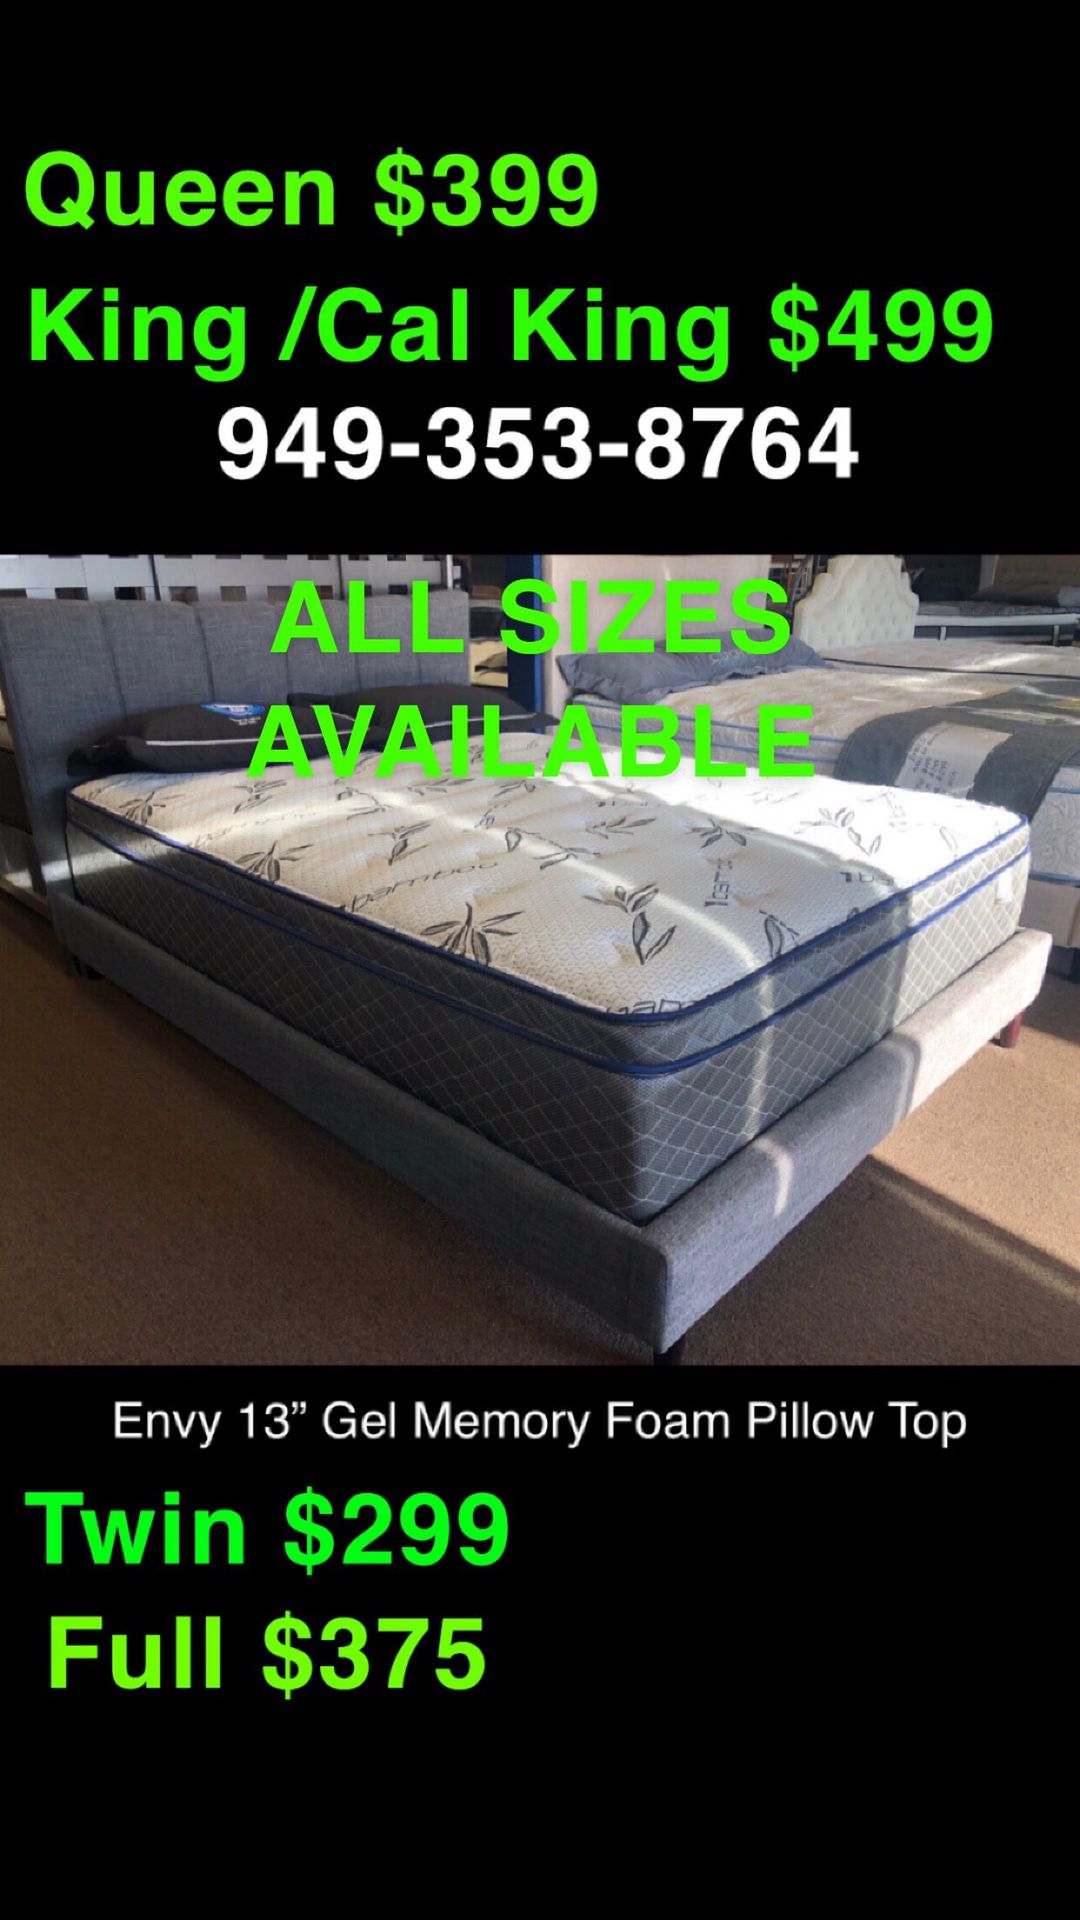 KING / CAL KING COOL GEL MEMORY FOAM HYBRID PILLOW TOP MATTRESS ❄️ INDIVIDUAL COILS ❤️ALL SIZES AVAILABLE 🛏 MADE IN 🇺🇸